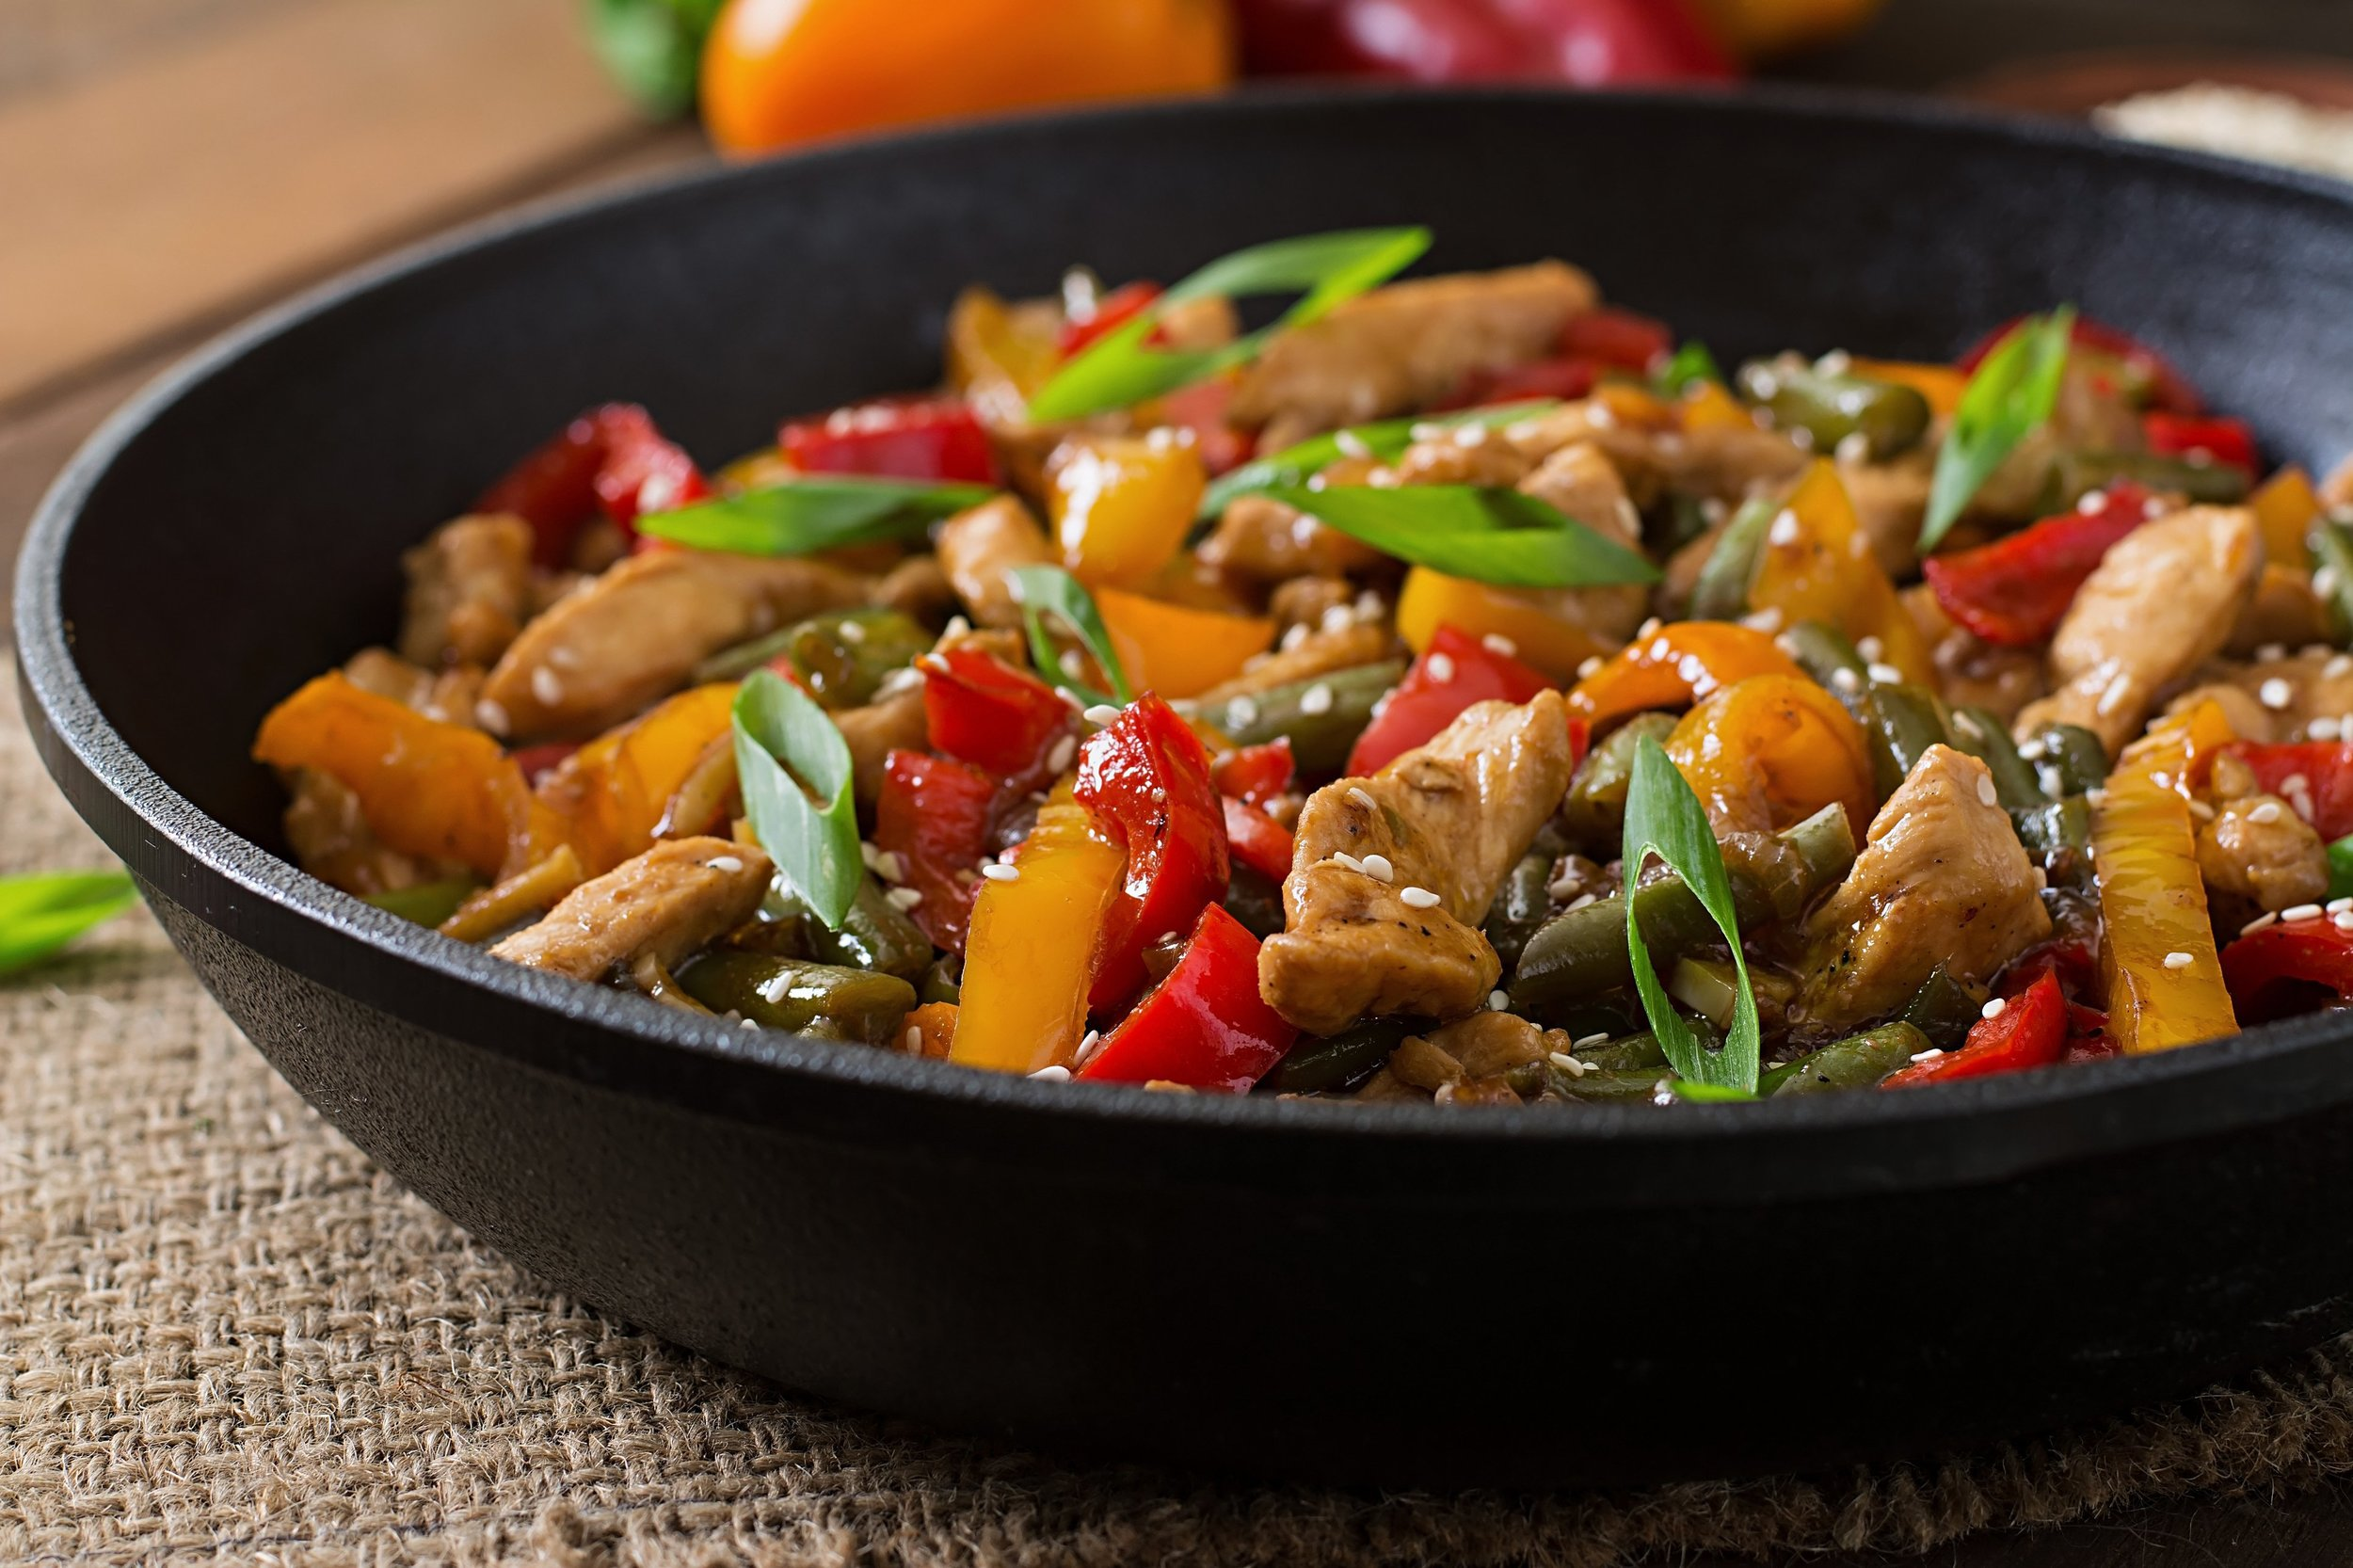 Chicken stir fry with bell peppers onions soy sauce garlic and rice